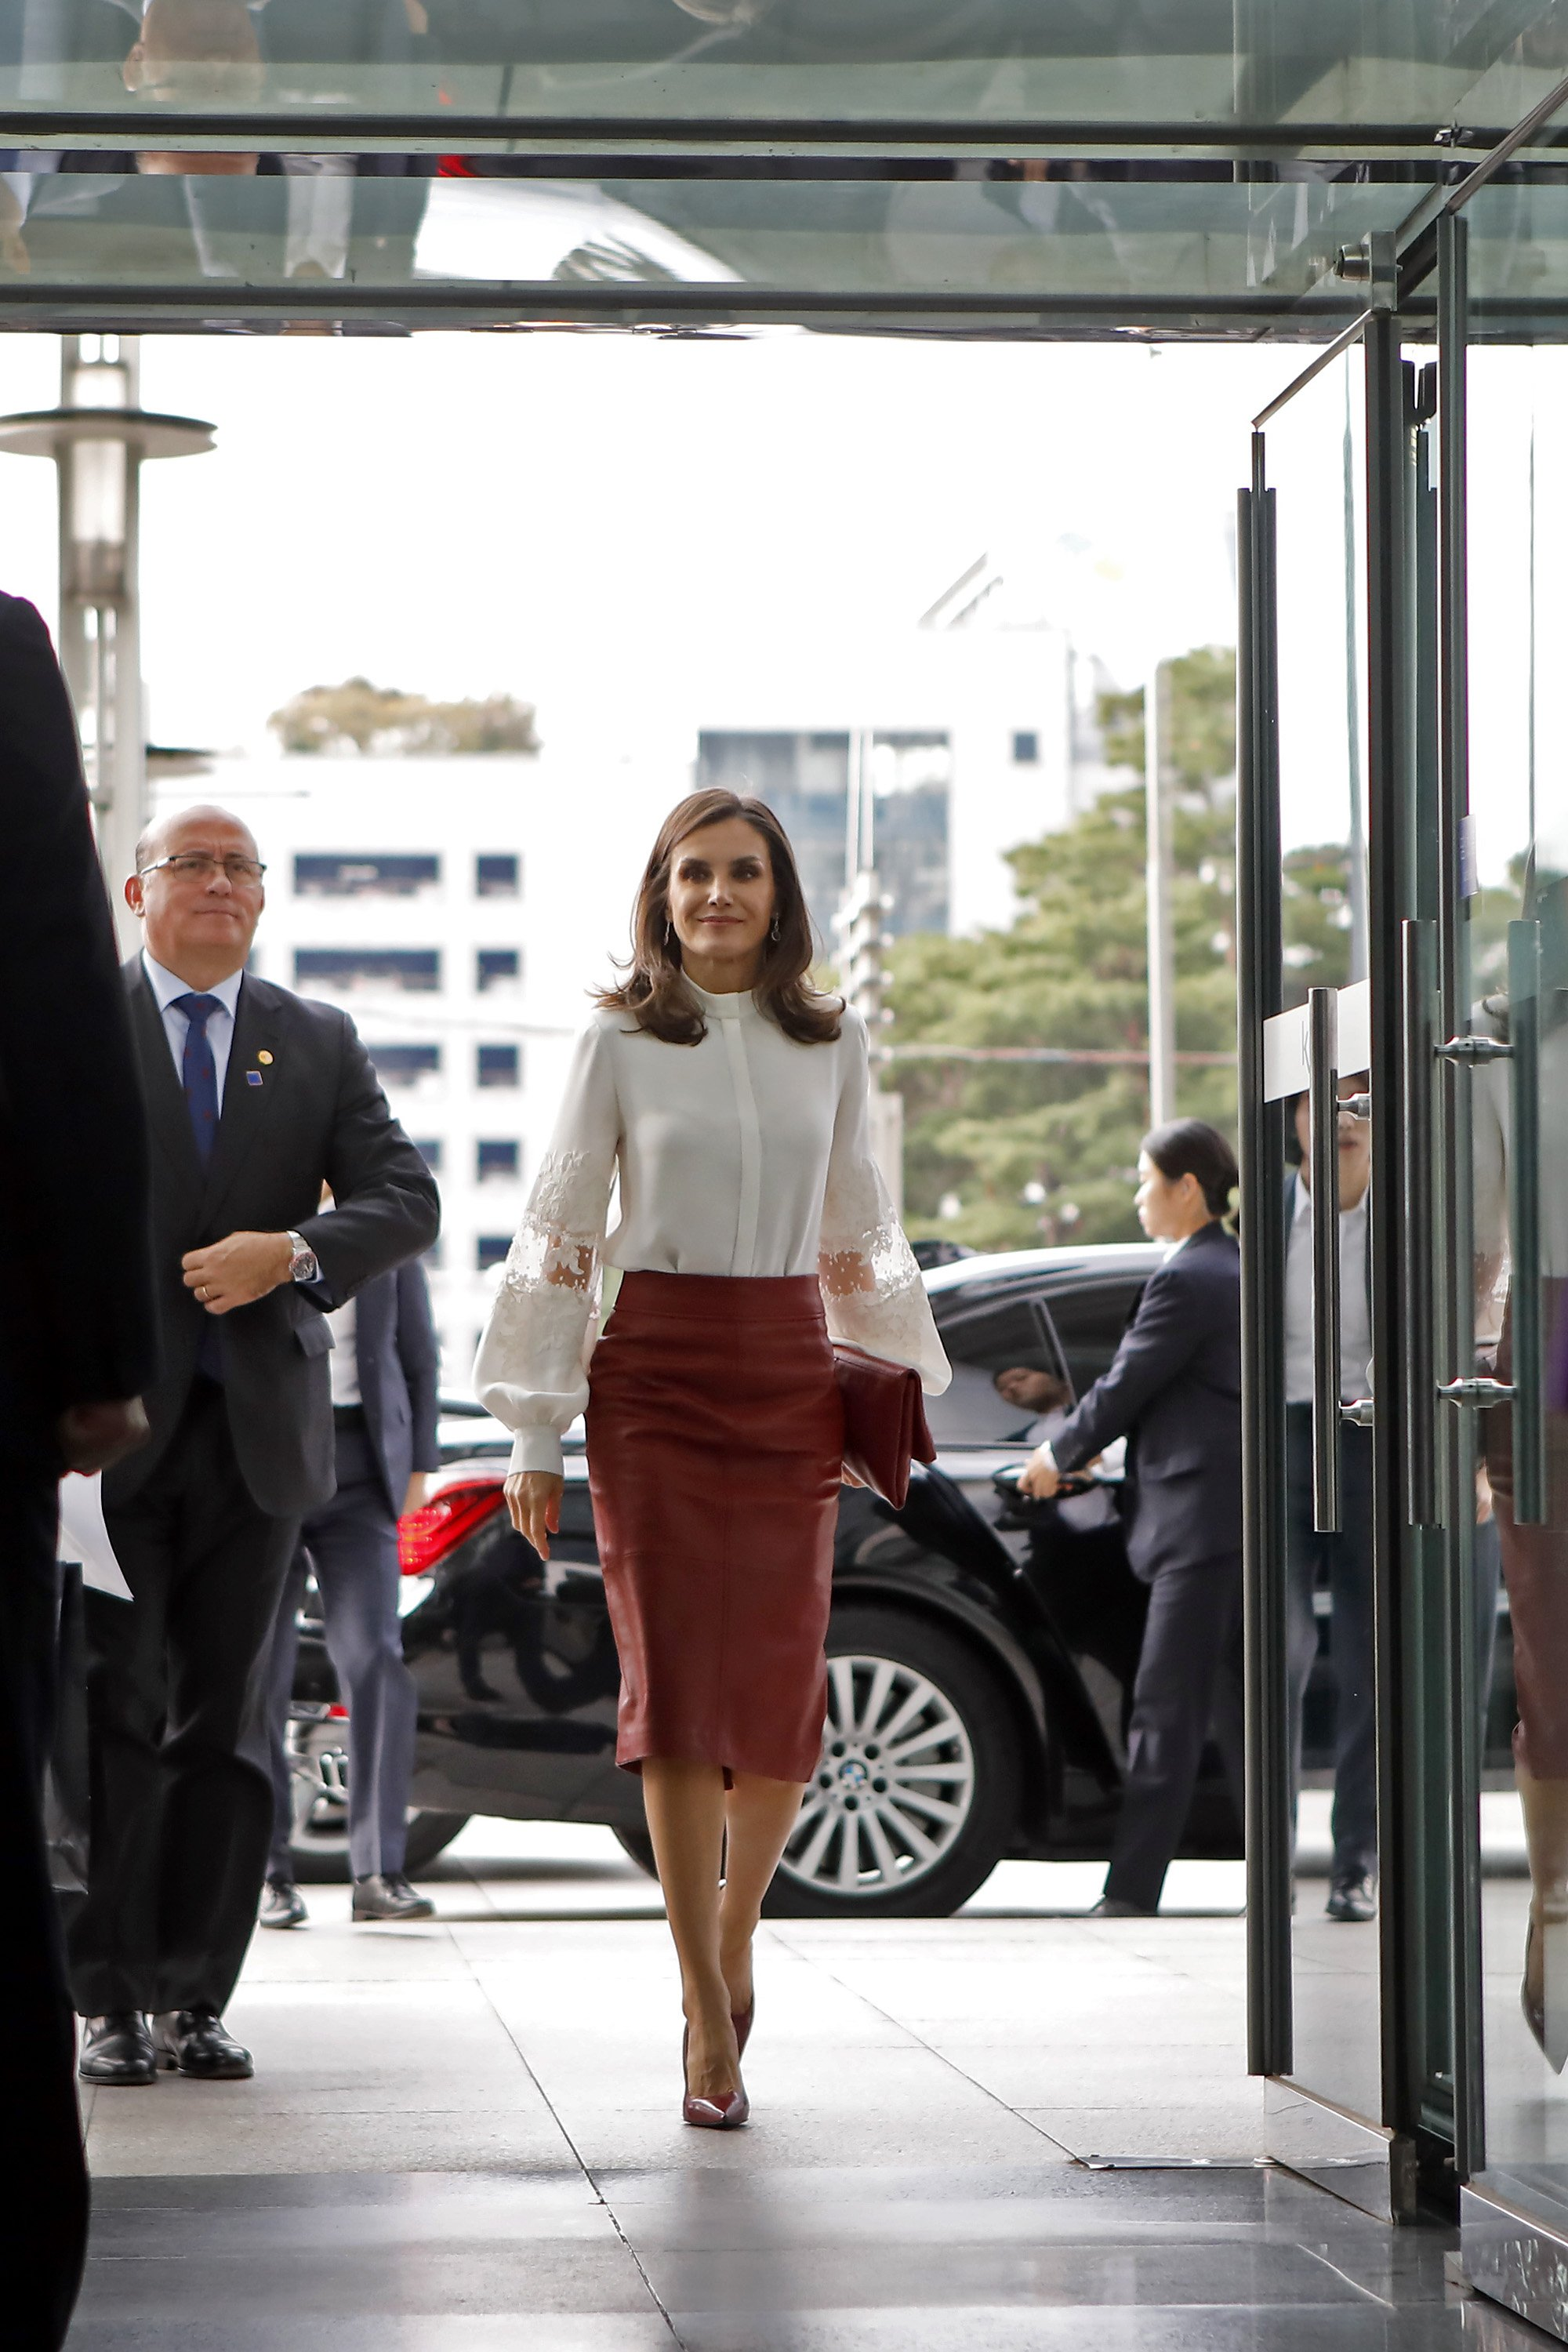 Queen Letizia of Spain arrives at KOTRA, on October 24, 2019 in Seoul, South Korea | Photo: GettyImages